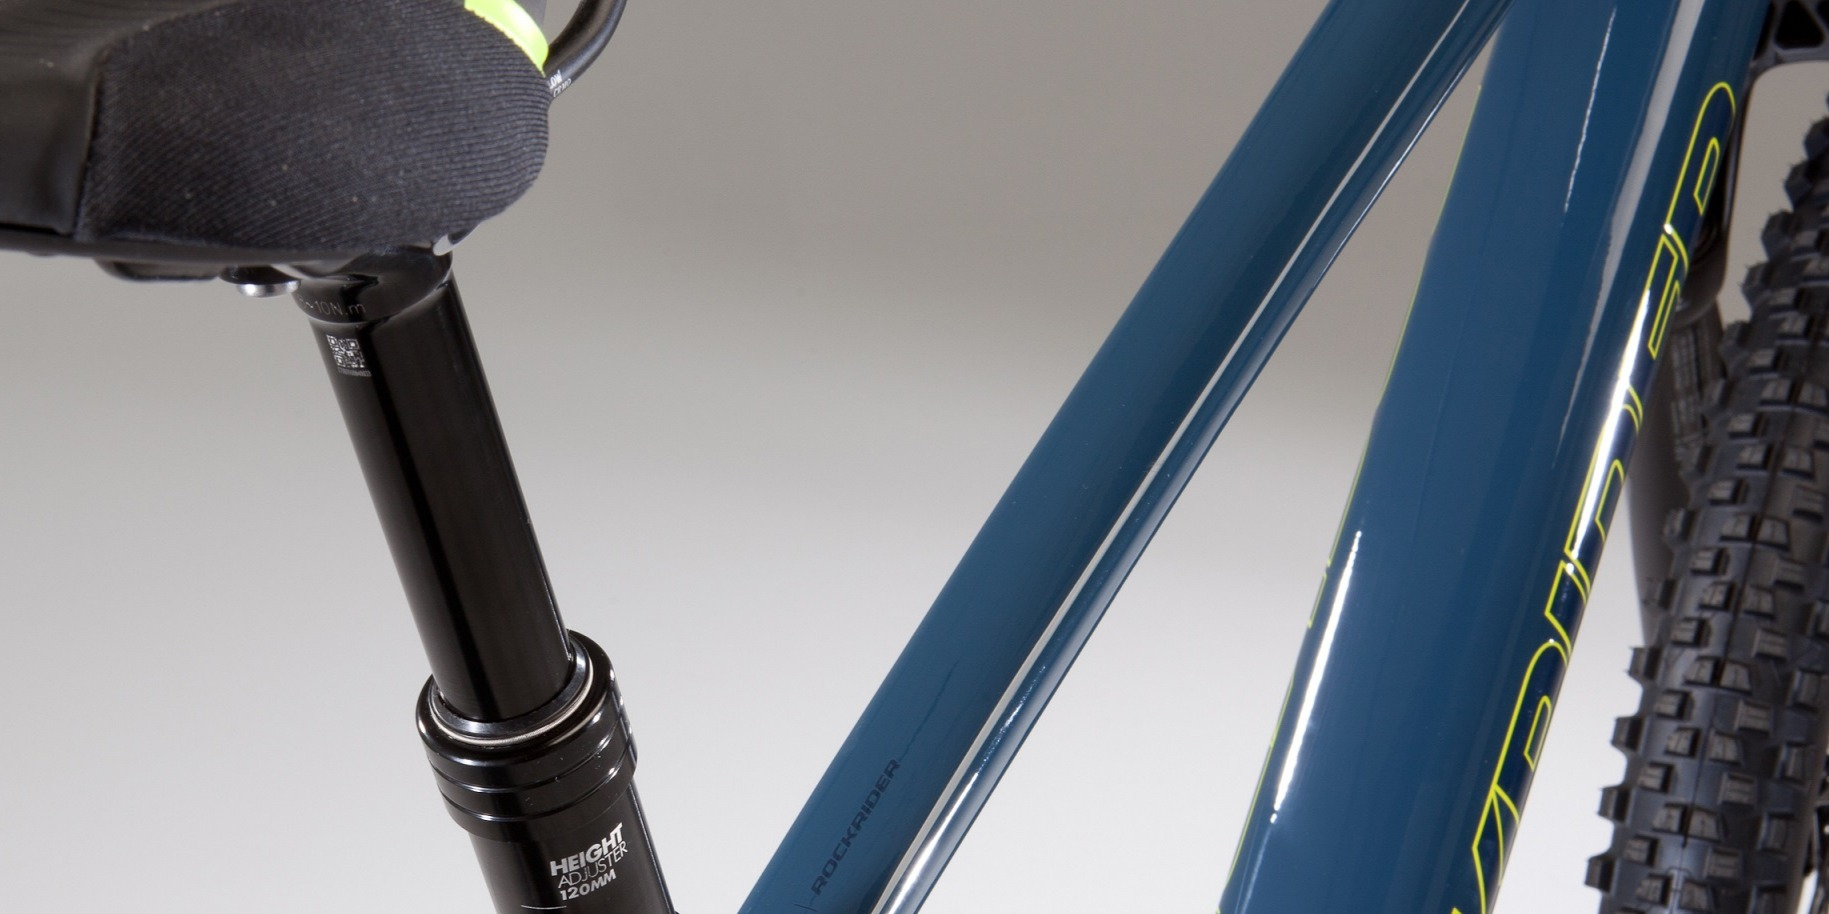 Buyers' Guide To Choosing The Right Seatpost